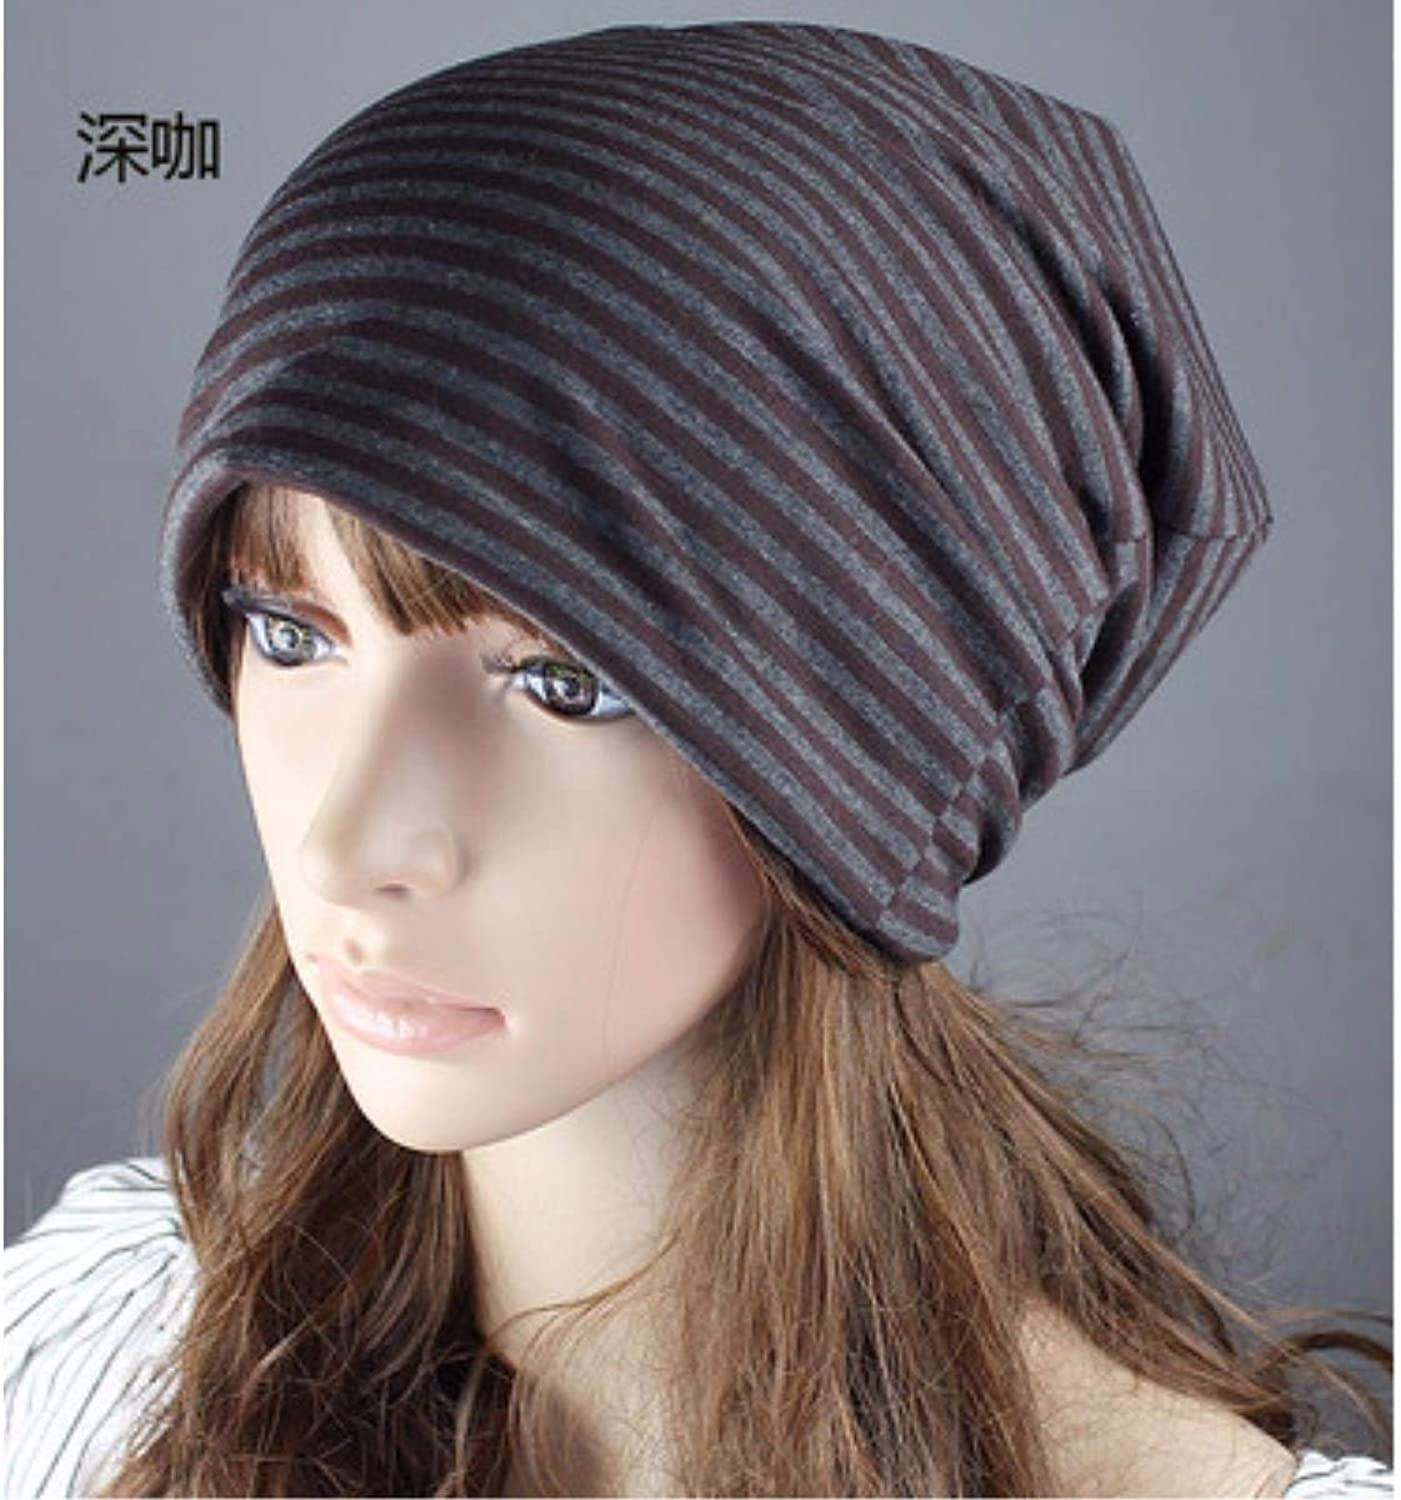 Chuiqingnet Hat the girl four seasons scarf cap storehouse cap stripes street dance sleeve head hat chemotherapy Cap